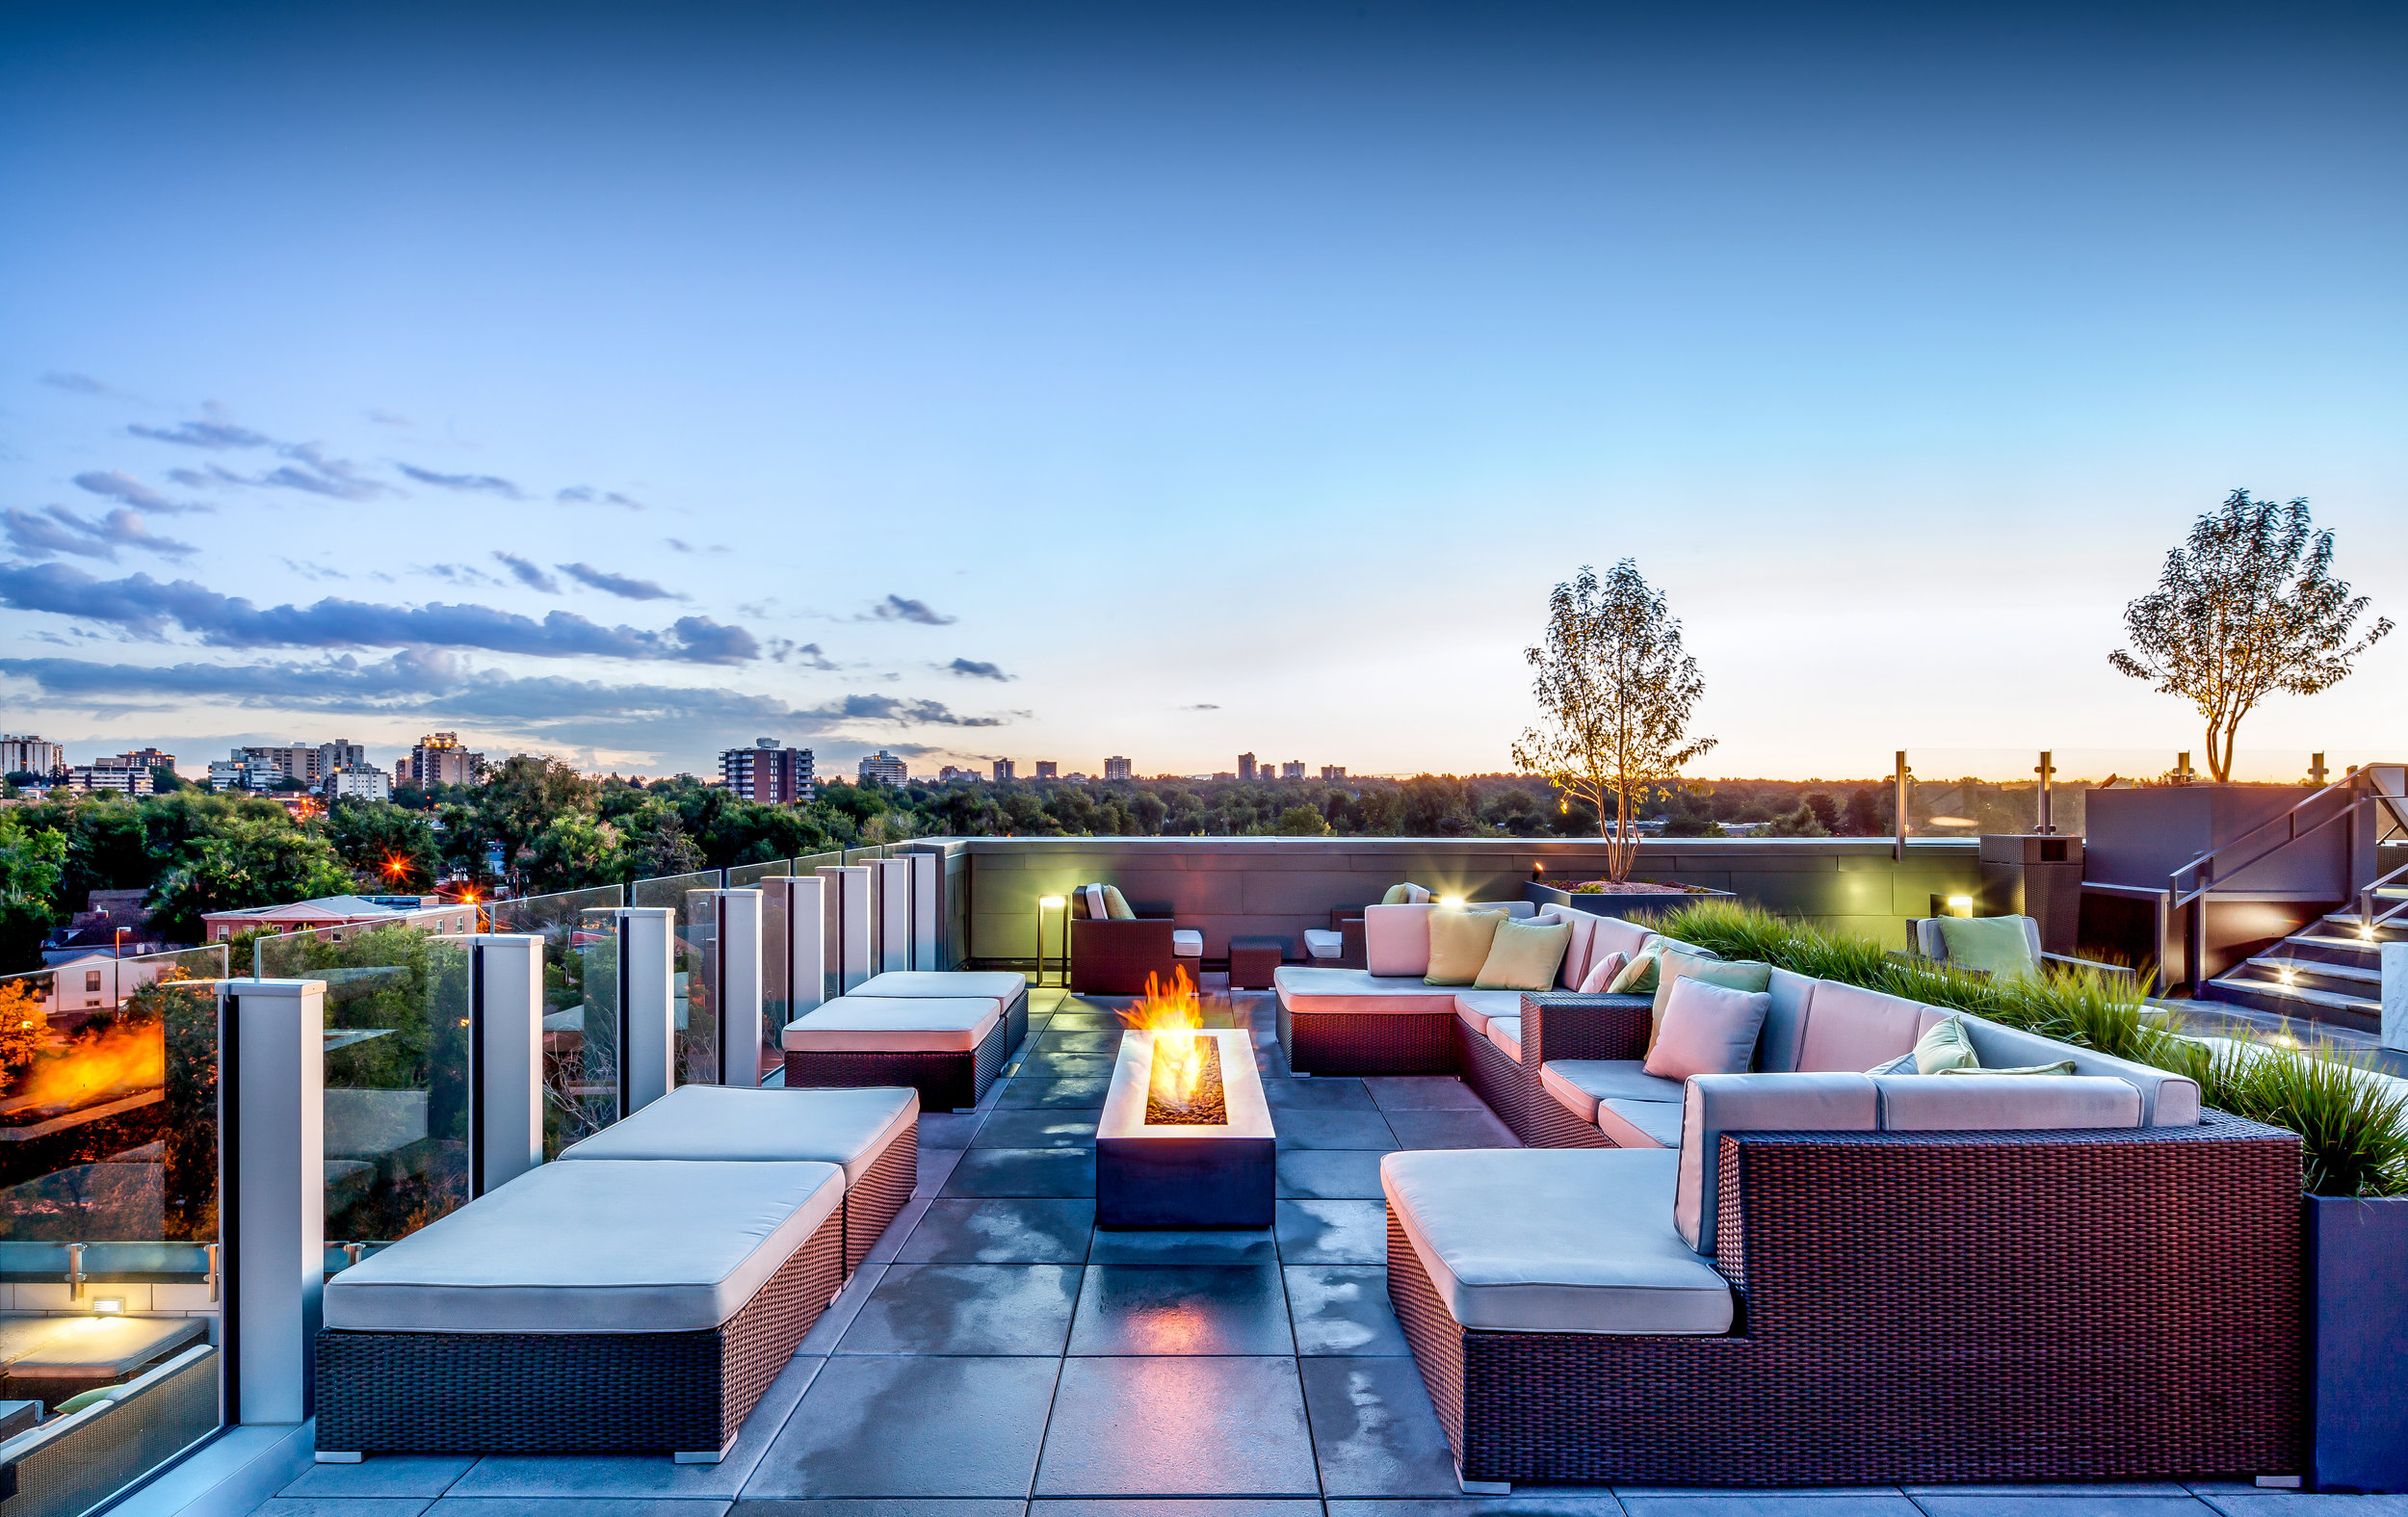 """<img src="""" studioINSITE_My_Block_Wash_Park_Roof_Deck_Fire_Pit_Seating"""" alt=""""Urban Living, Multifamily Courtyards, Amenity Deck, Swimming Pool, Spa, Landscape Architecture, Luxury Living, My Block Wash Park, Denver, CO, Colorado Courtyards, Rooftop Amenity  """" title=""""My Block Wash Park  """"/>"""